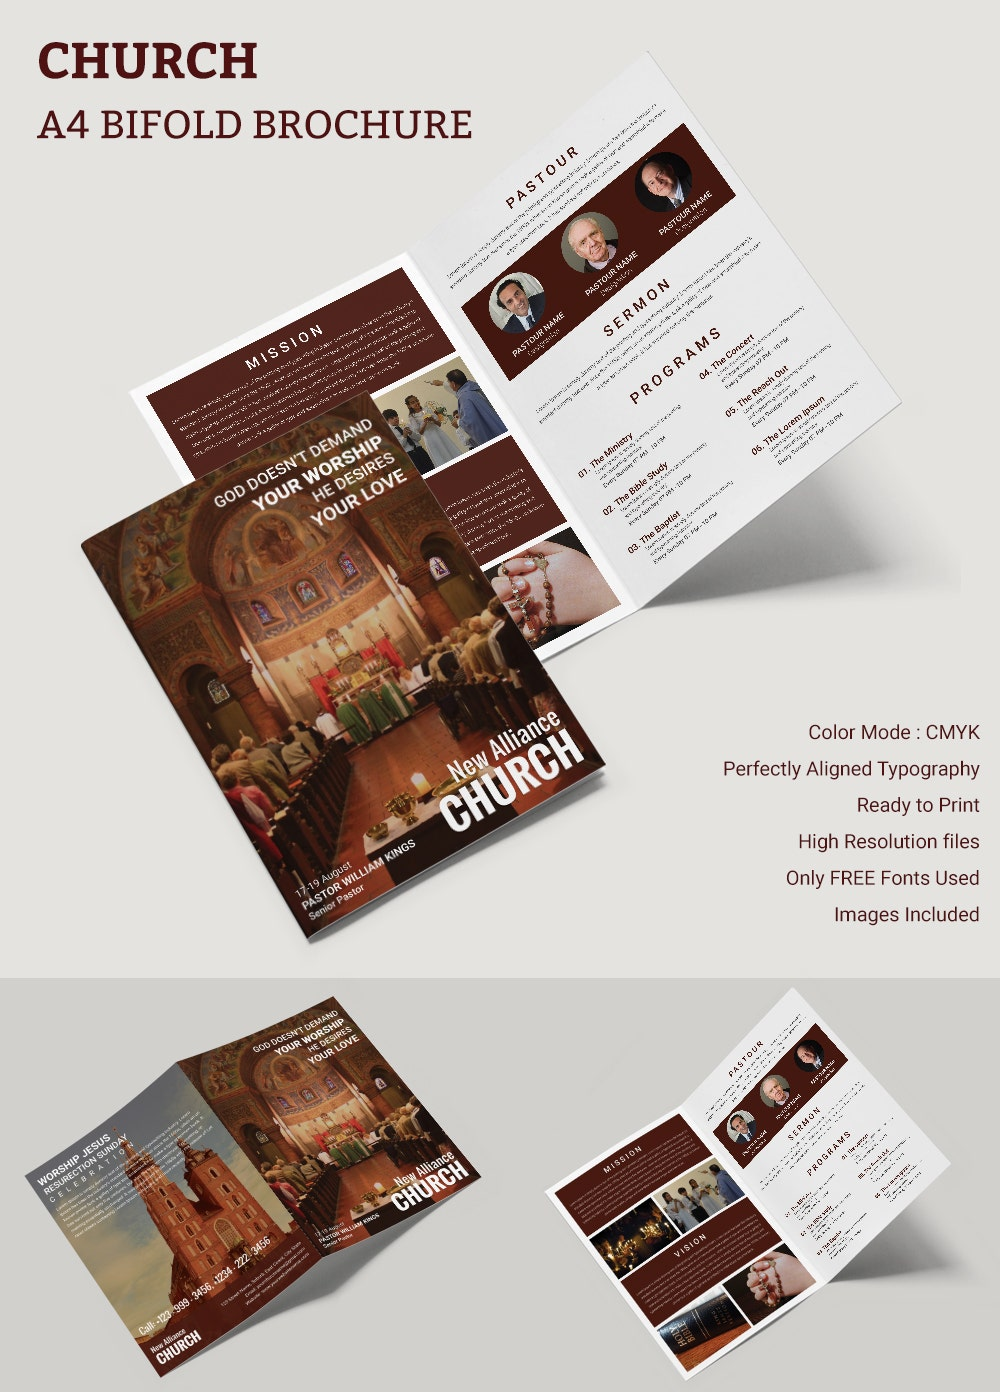 15 popular church brochure templates designs free for Free bi fold brochure templates